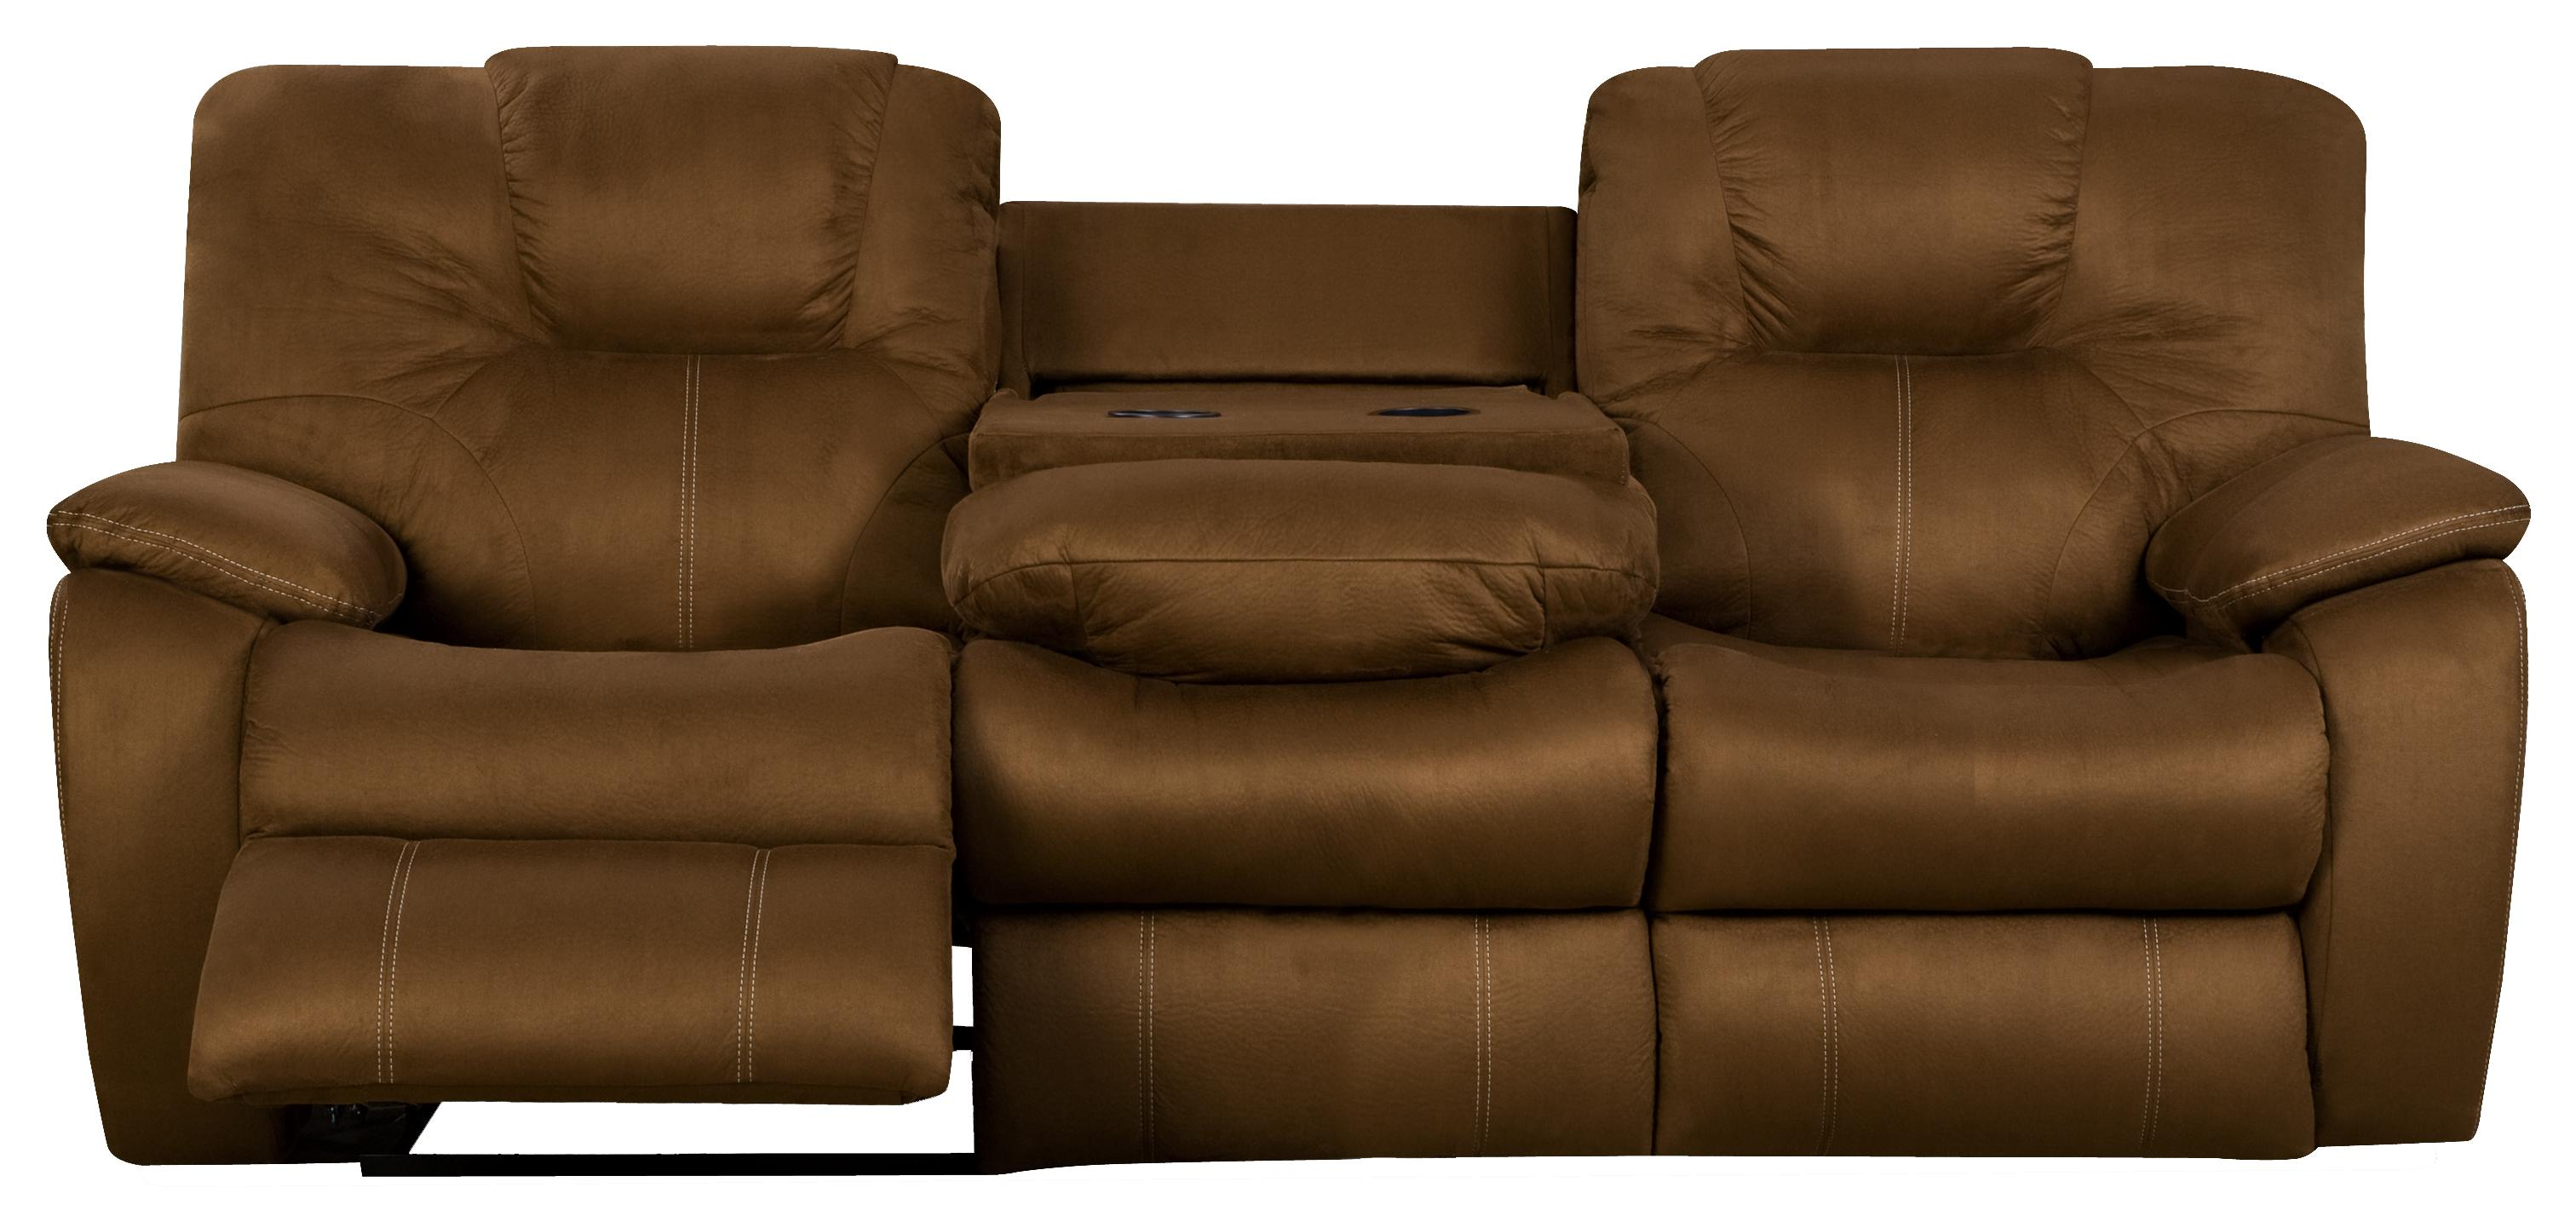 Southern Motion Avalon 838 33 Comfortable Reclining Sofa With Drop